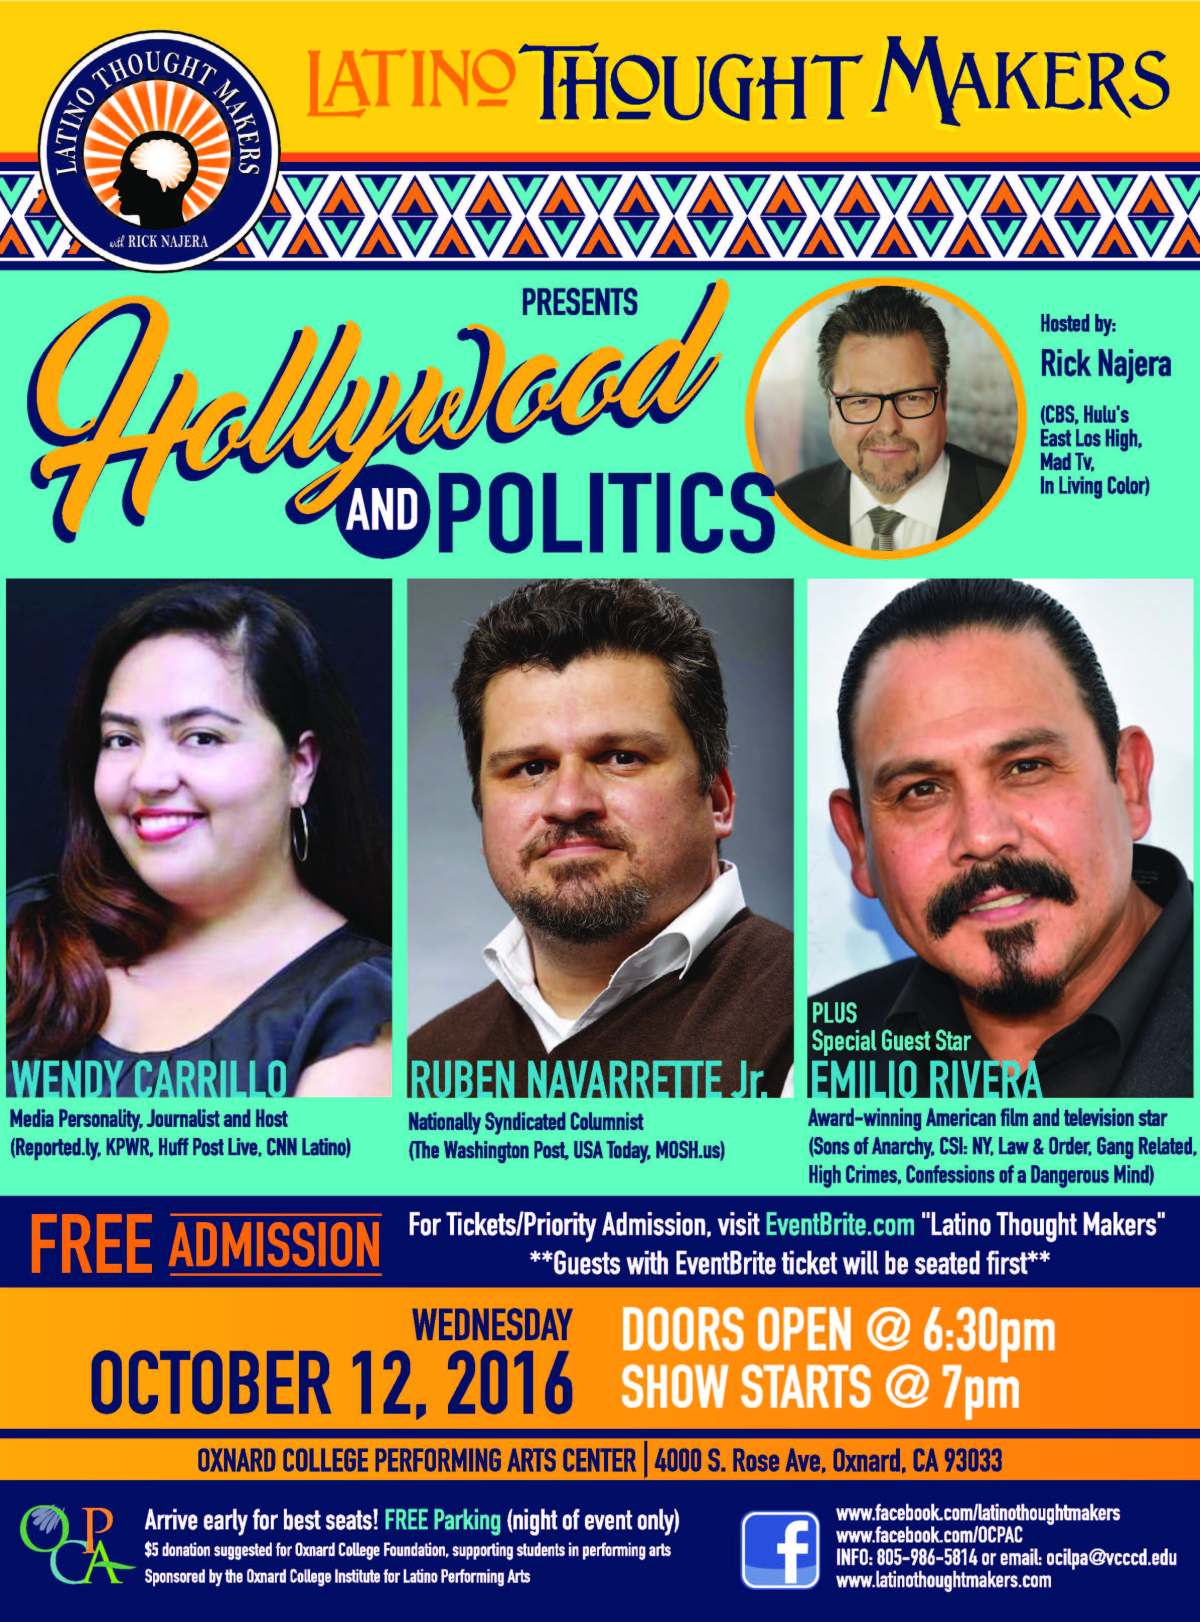 Tickets Now Available for Oct 12 Latino Thought Makers with Rick Najera, Emilio Rivera, Ruben Navarrette and Wendy Carrillo: Hollywood & Politics